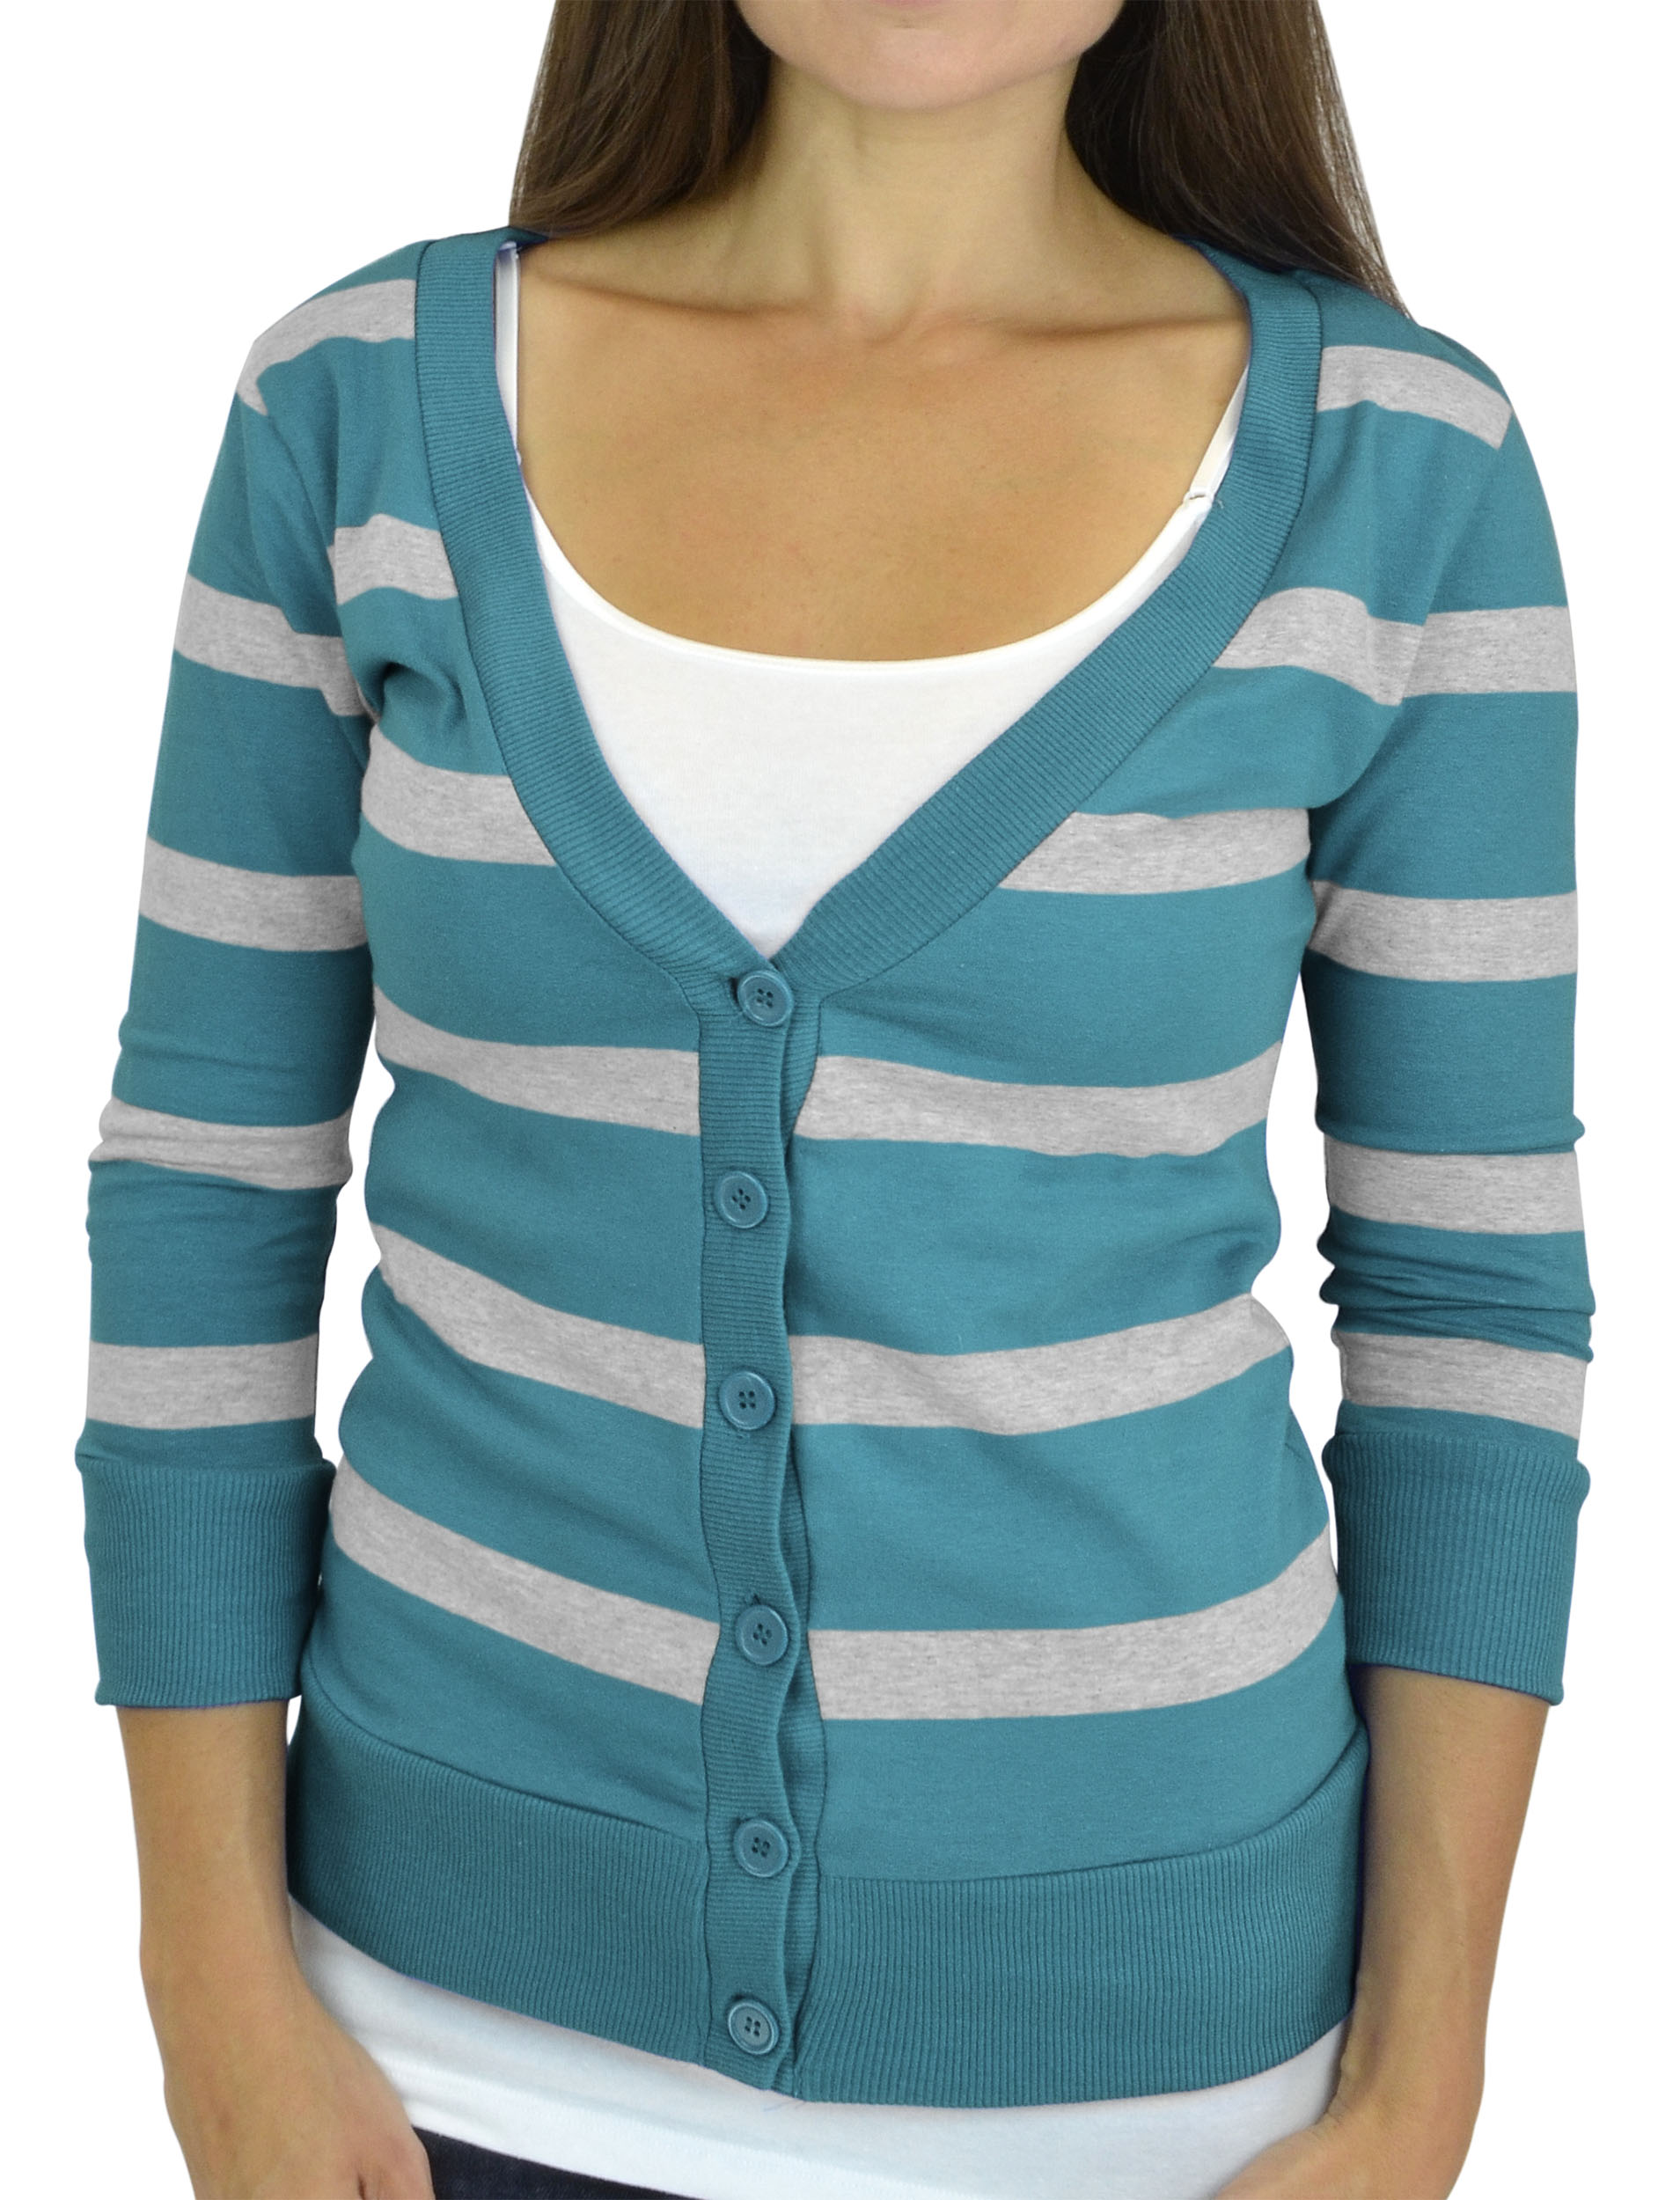 Belle Donne - Women / Girl Junior Size Soft 3/4 Sleeve V-Neck Sweater Cardigans - Teal/Small